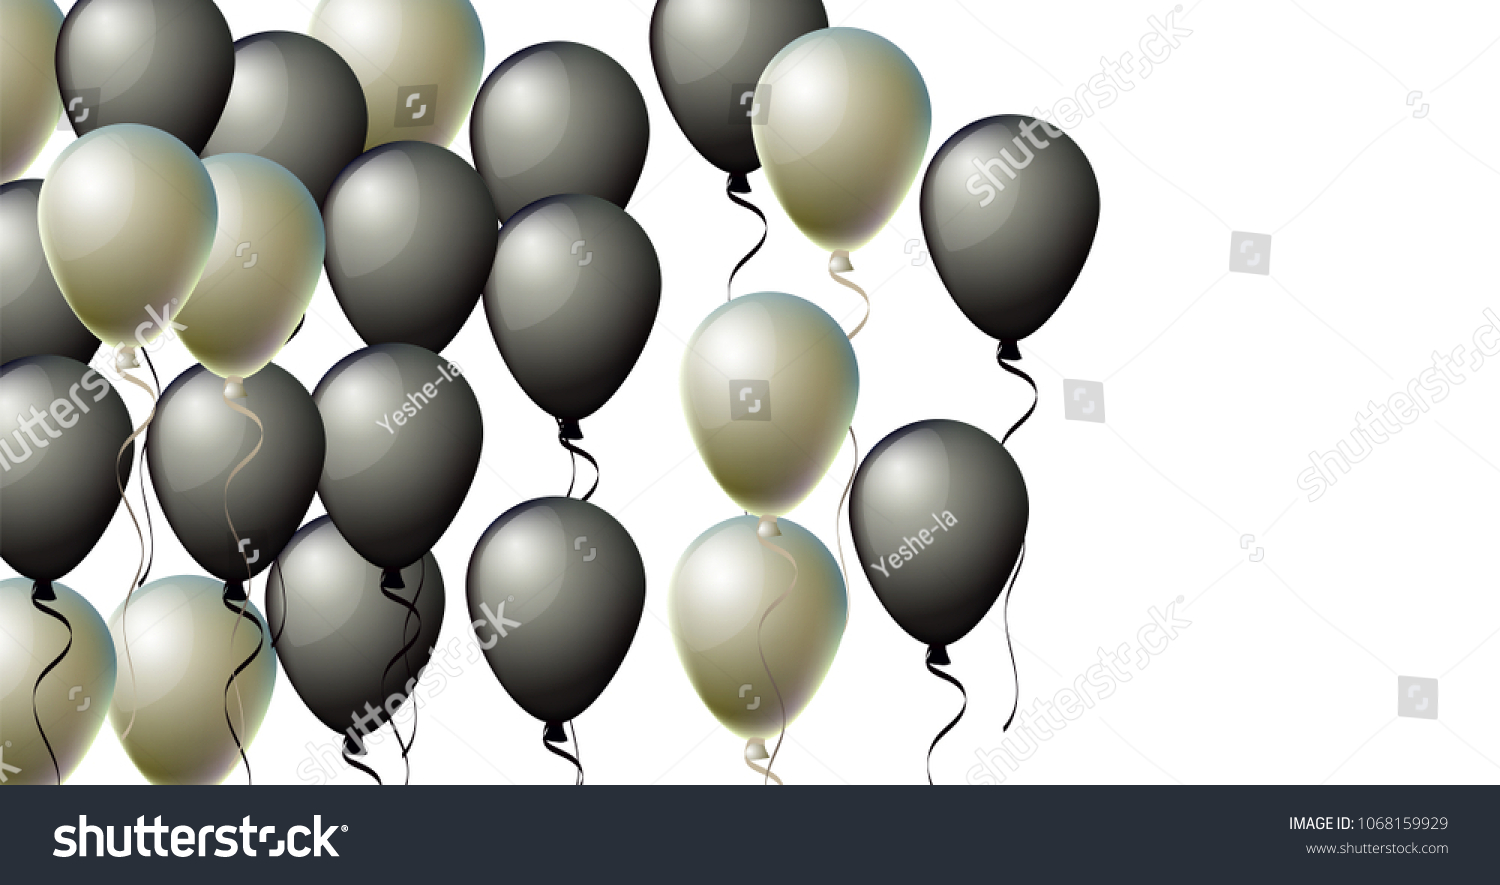 94a7277006e Realistic Black and Silver Helium Balloons. Party, Christmas, Birthday, New  Year Celebration